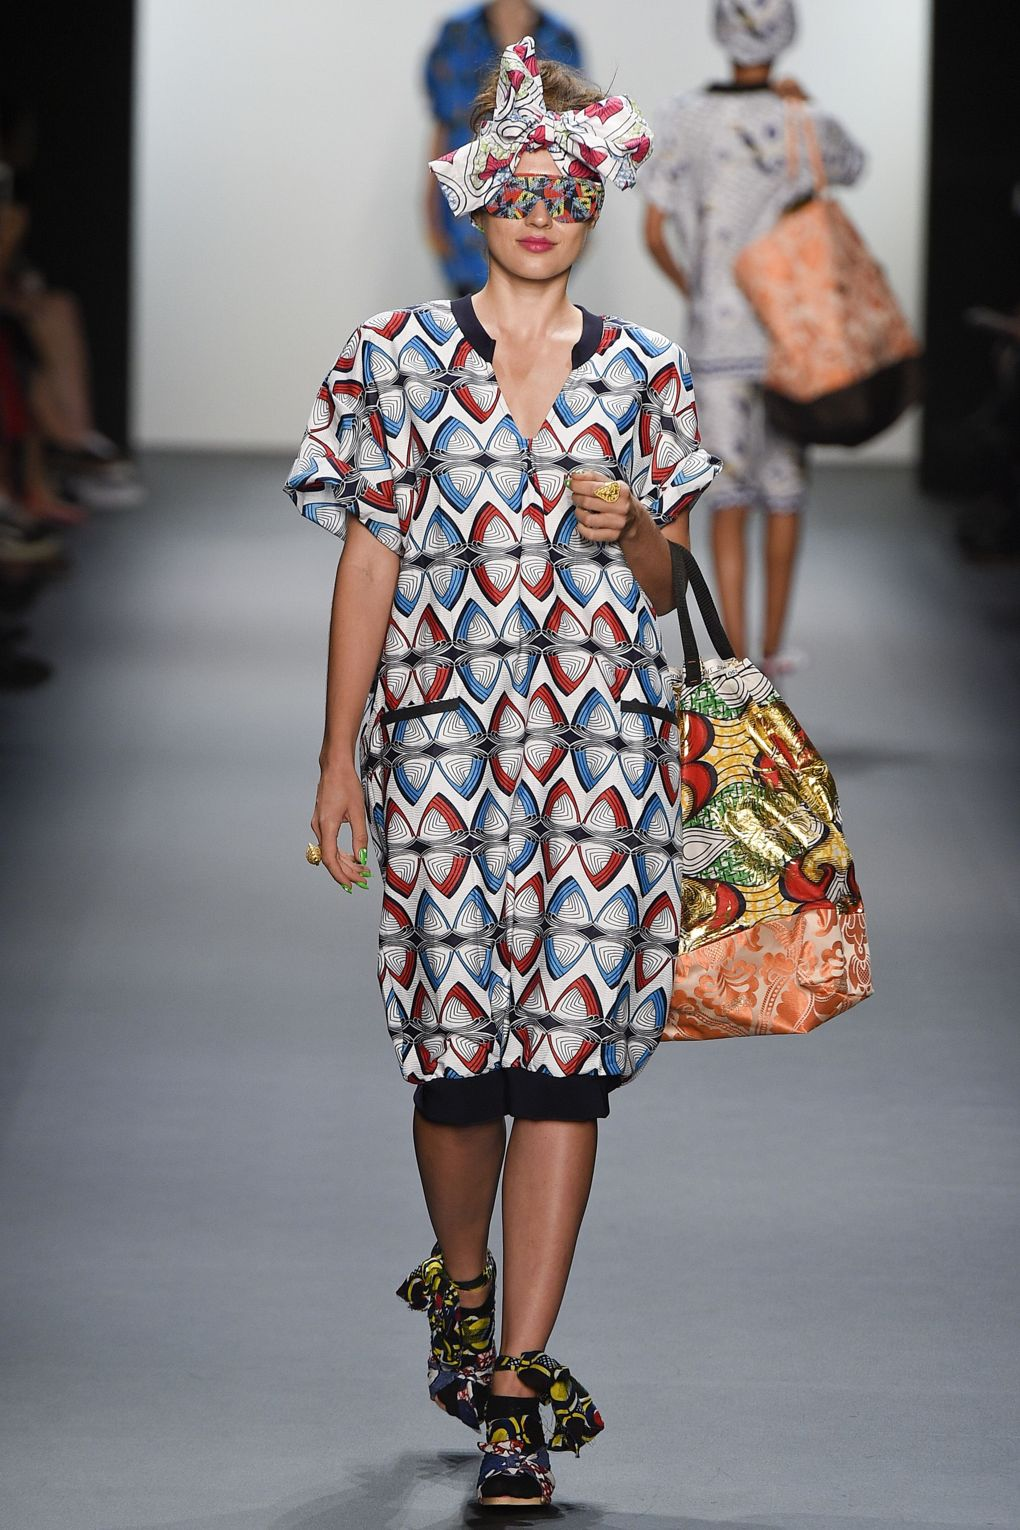 fashion-week-xuly-be%cc%88t-xuly-be%cc%88t-sprigsummer-2016-ready-to-wear-collection-13